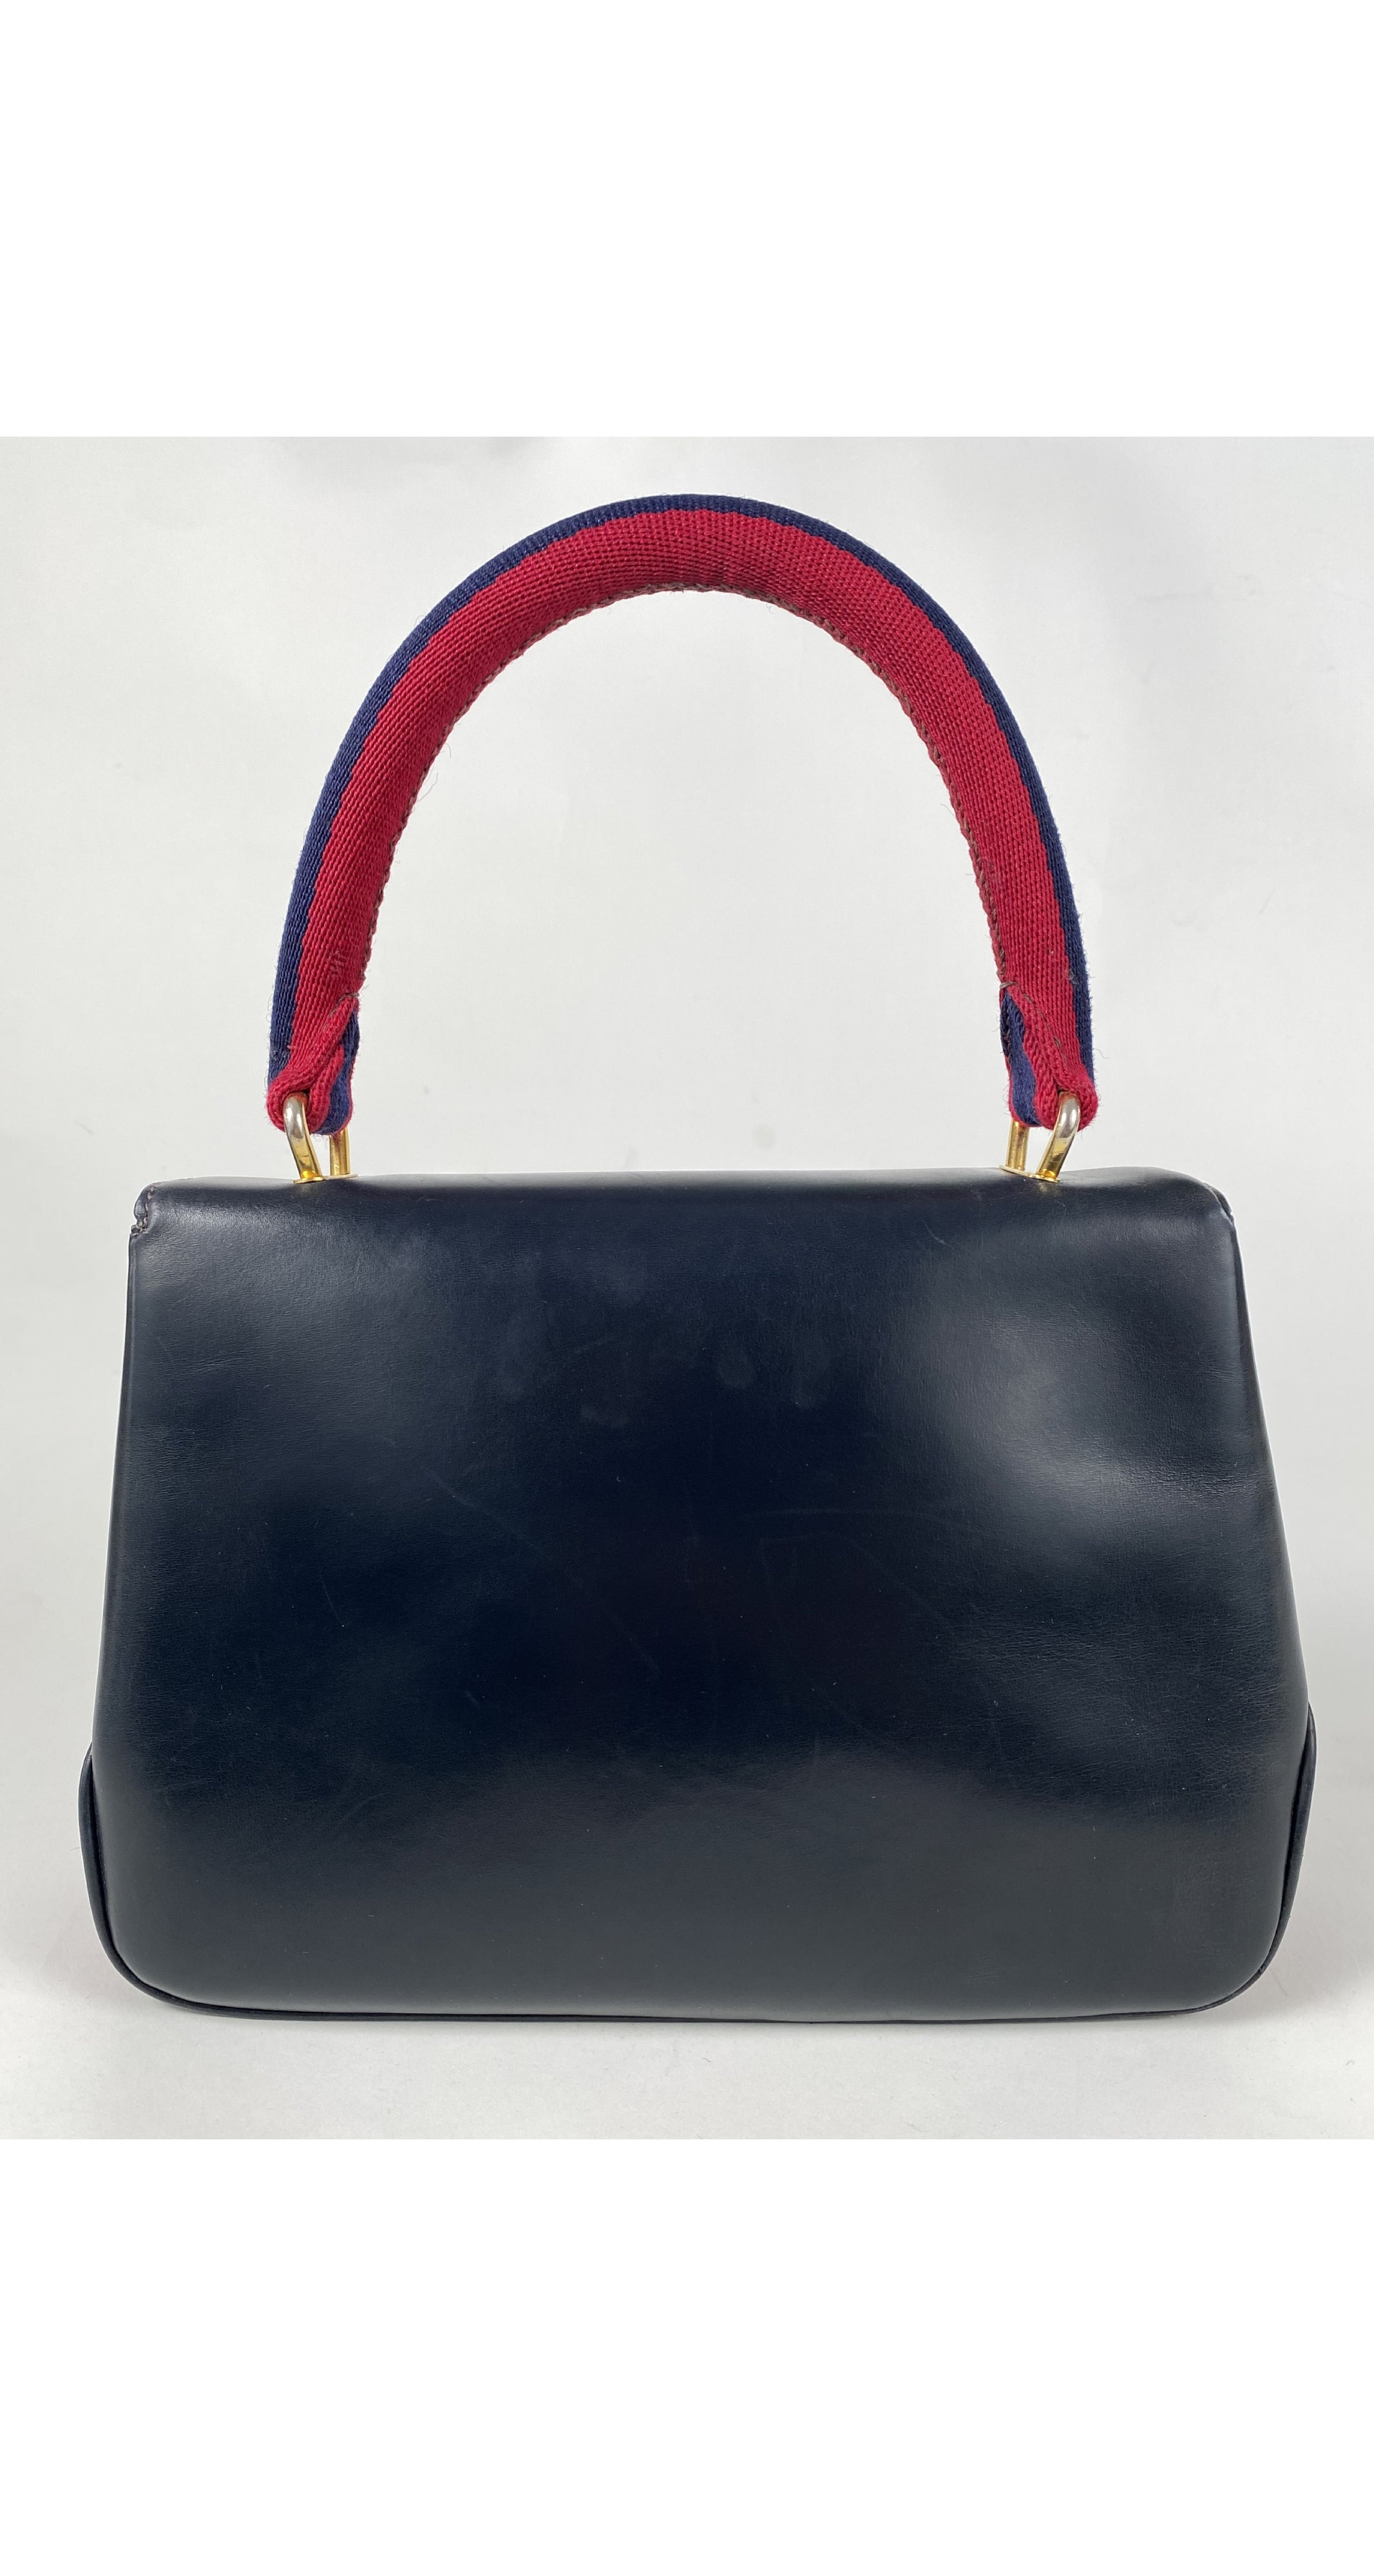 1960s Stripe Canvas Navy Leather Top-Handle Handbag